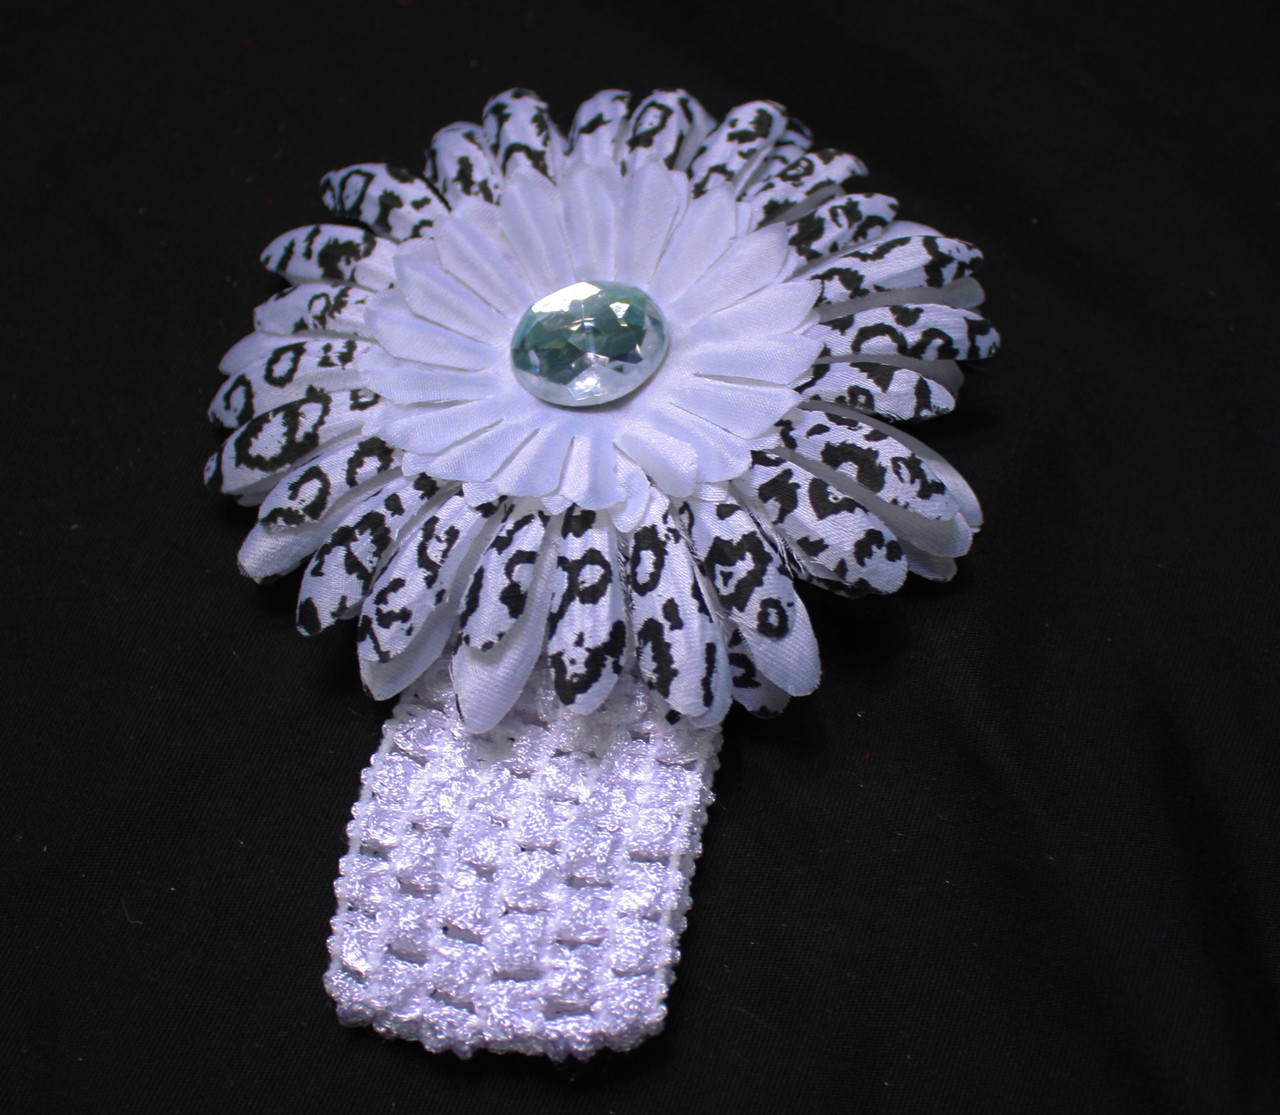 White cheetahGerbera daisy flower crochet headband